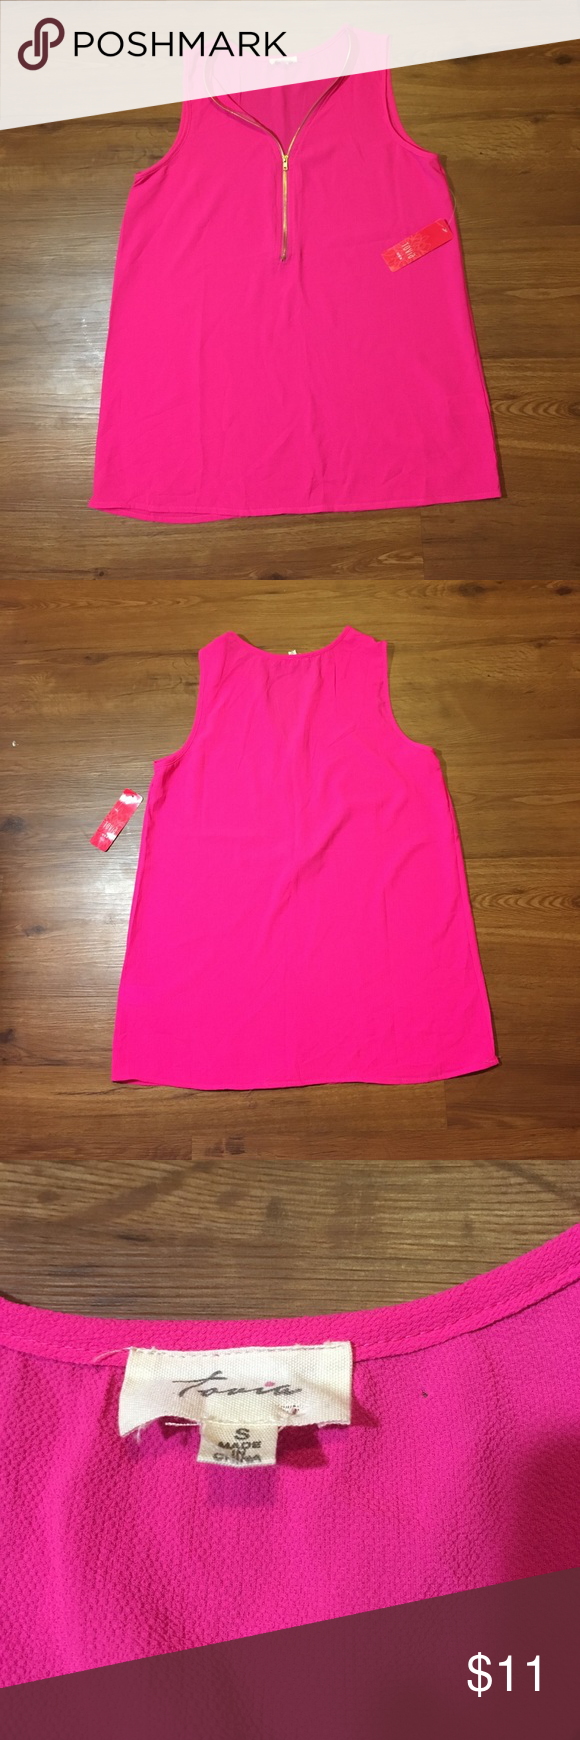 Tank Top Blouse Really pretty zip front, tank top Blouse Tovia Tops Blouses